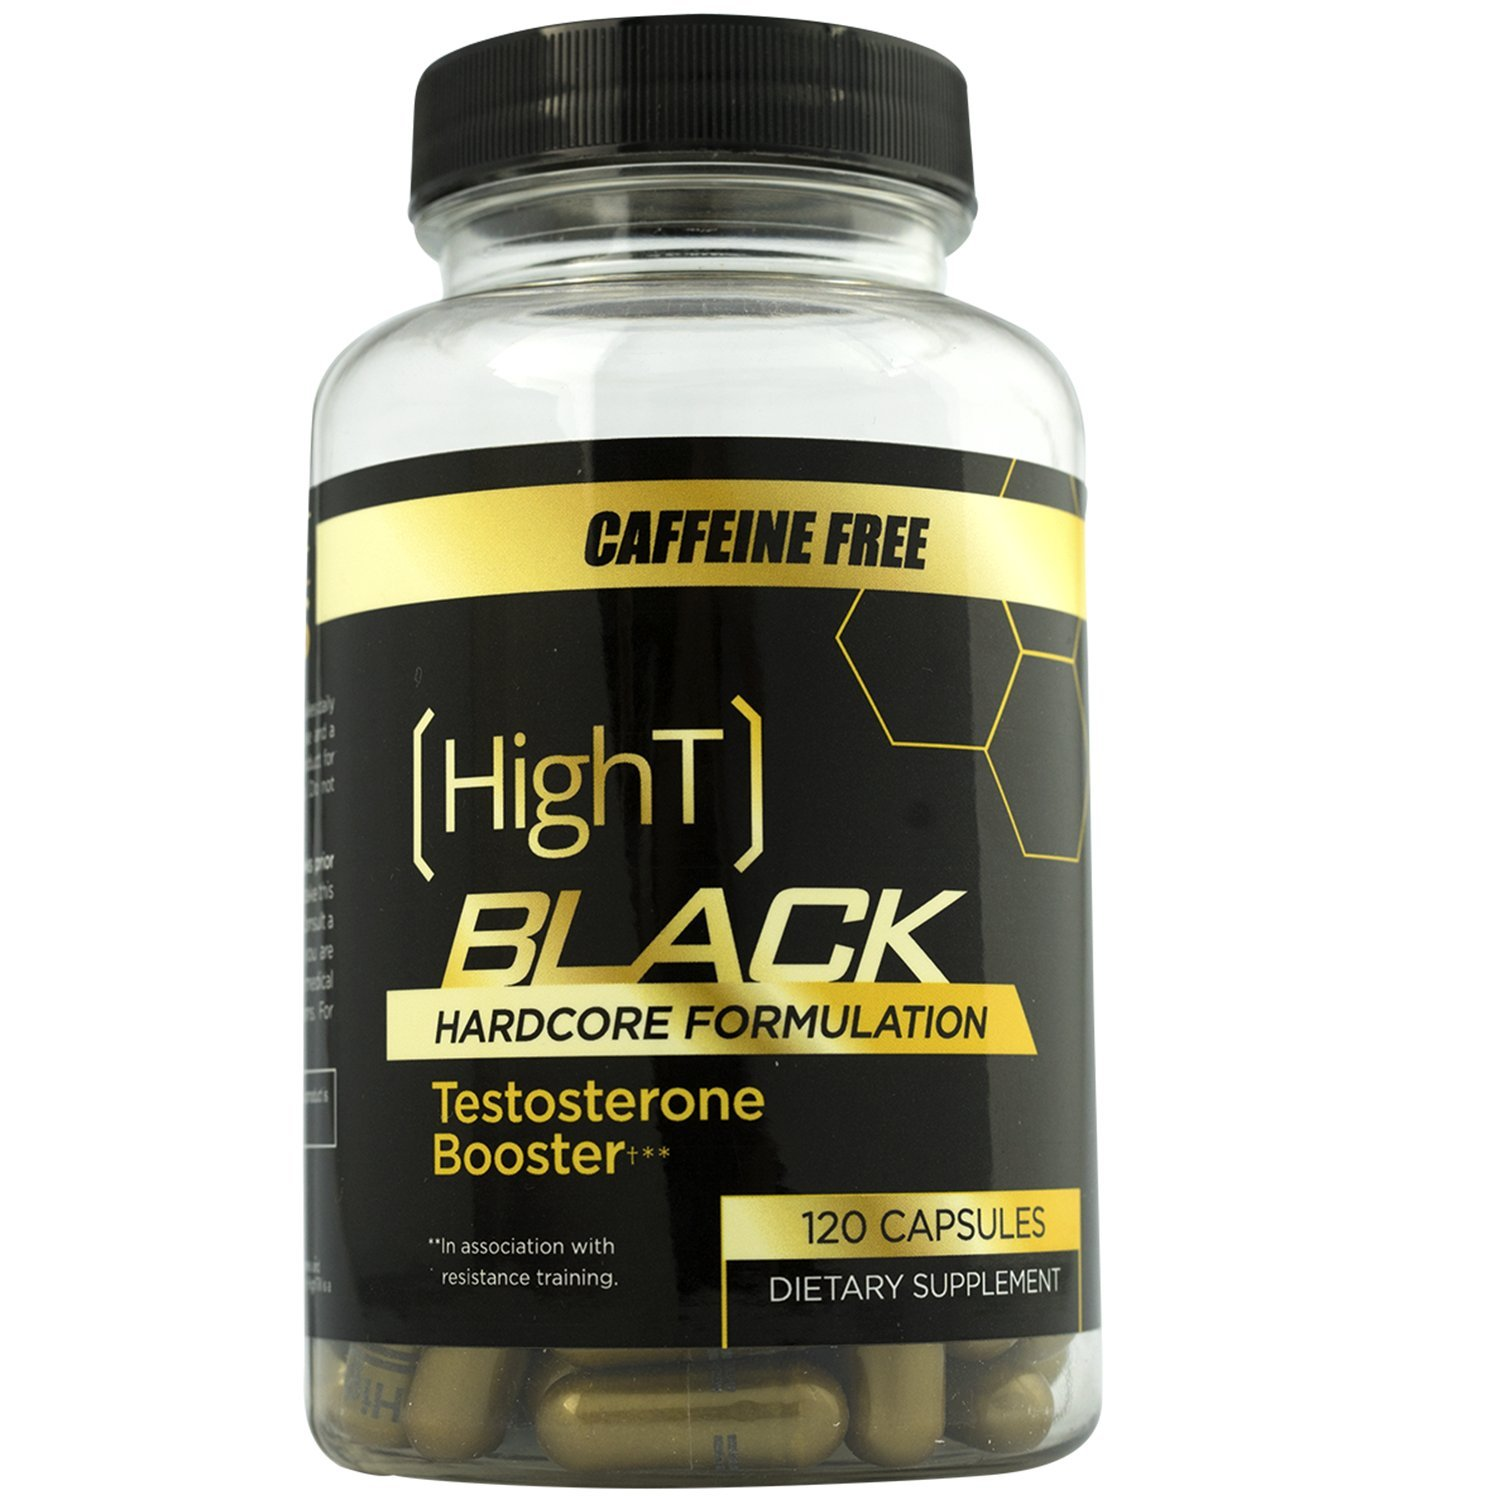 High T Black Caffeine Free, Testosterone Booster Pre Workout Hardcore Formulation - 120 capsules